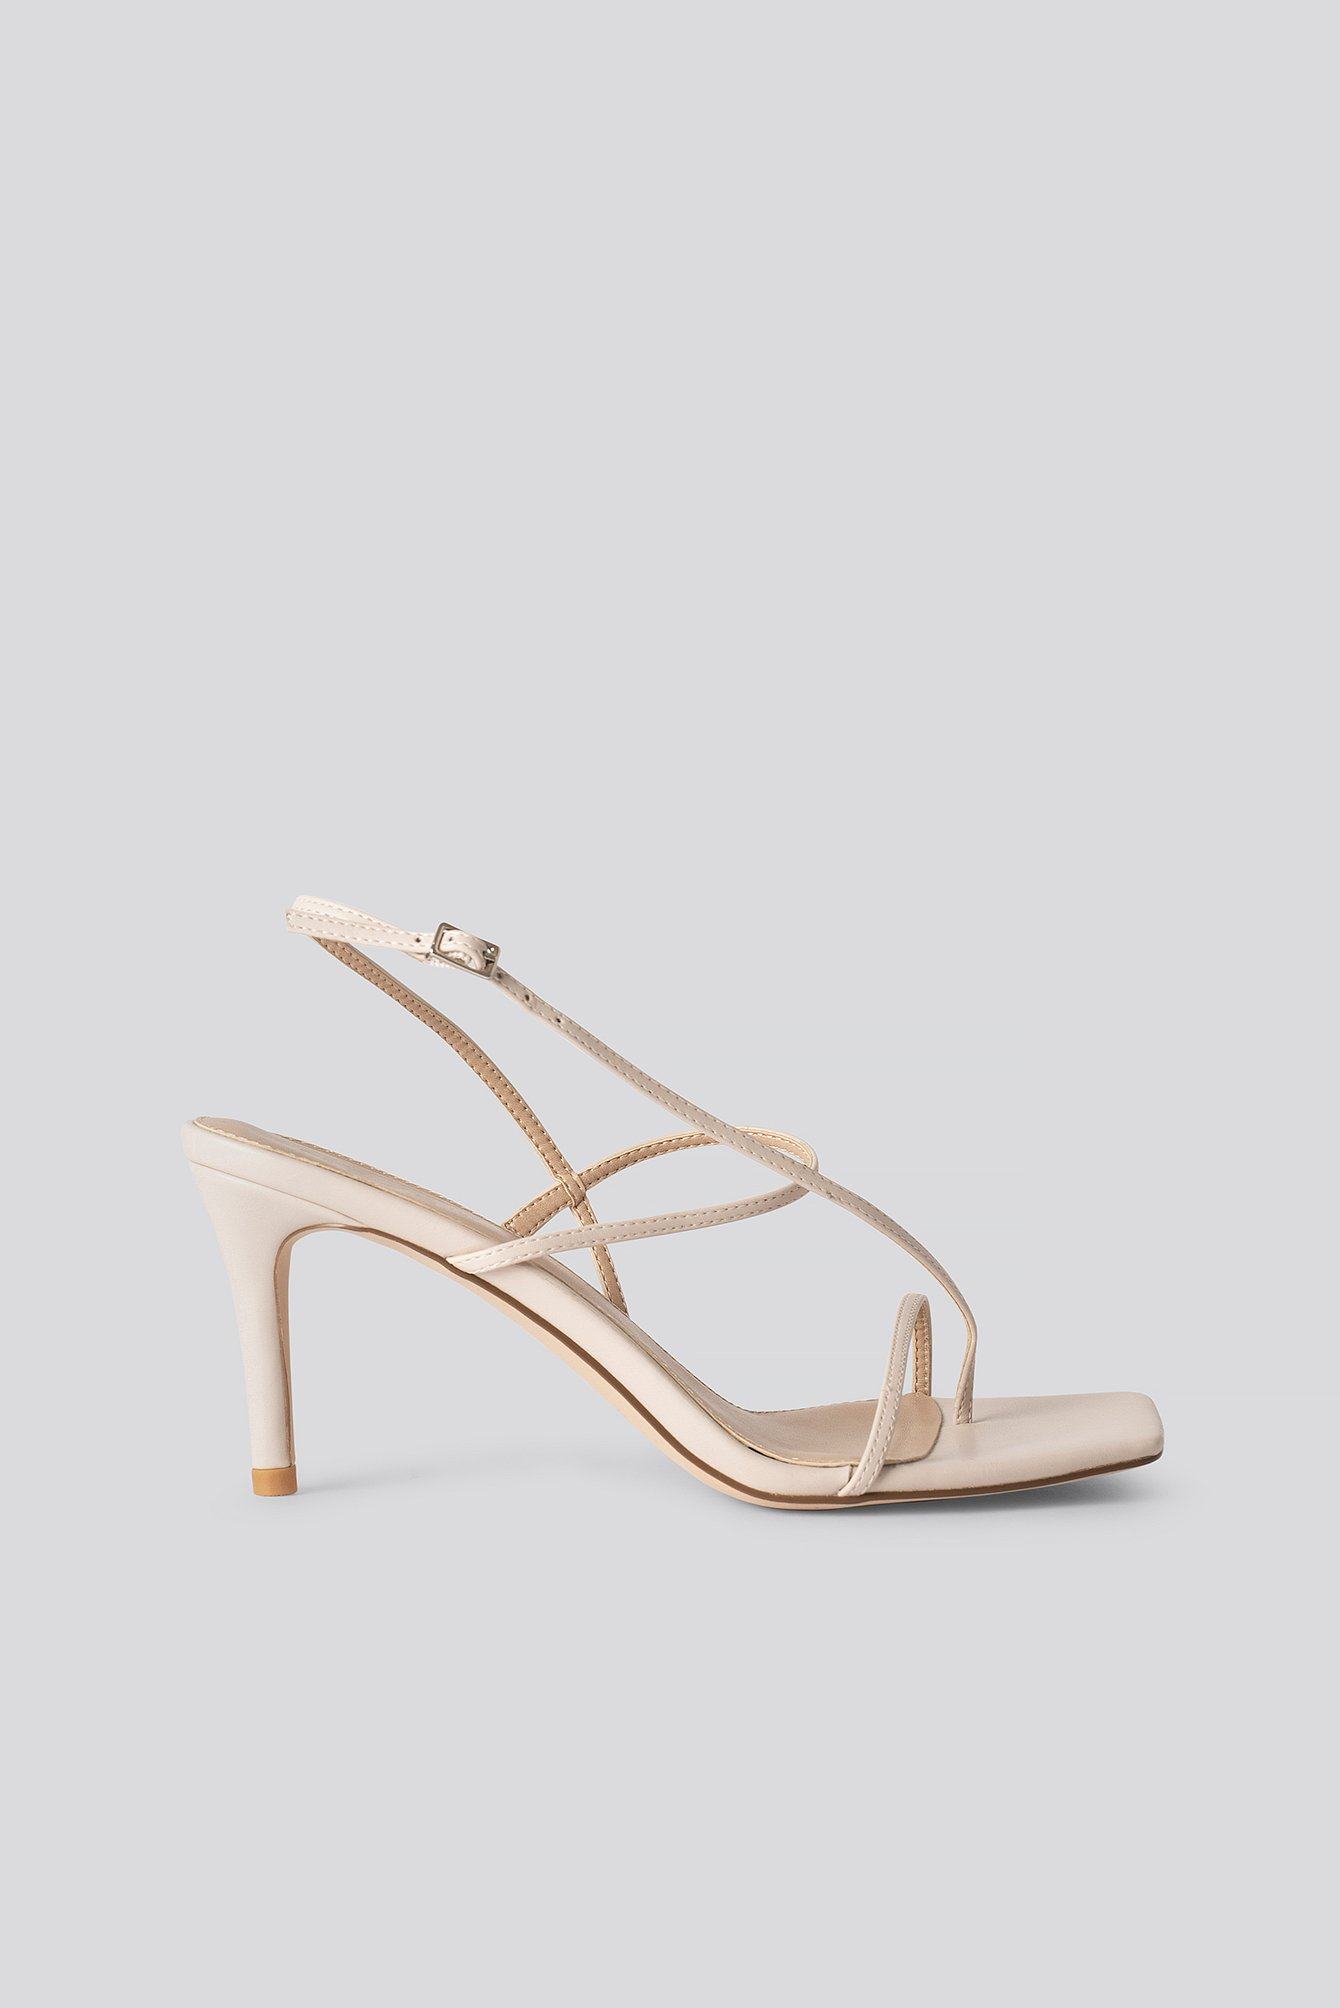 Nude Strappy Stiletto Sandals